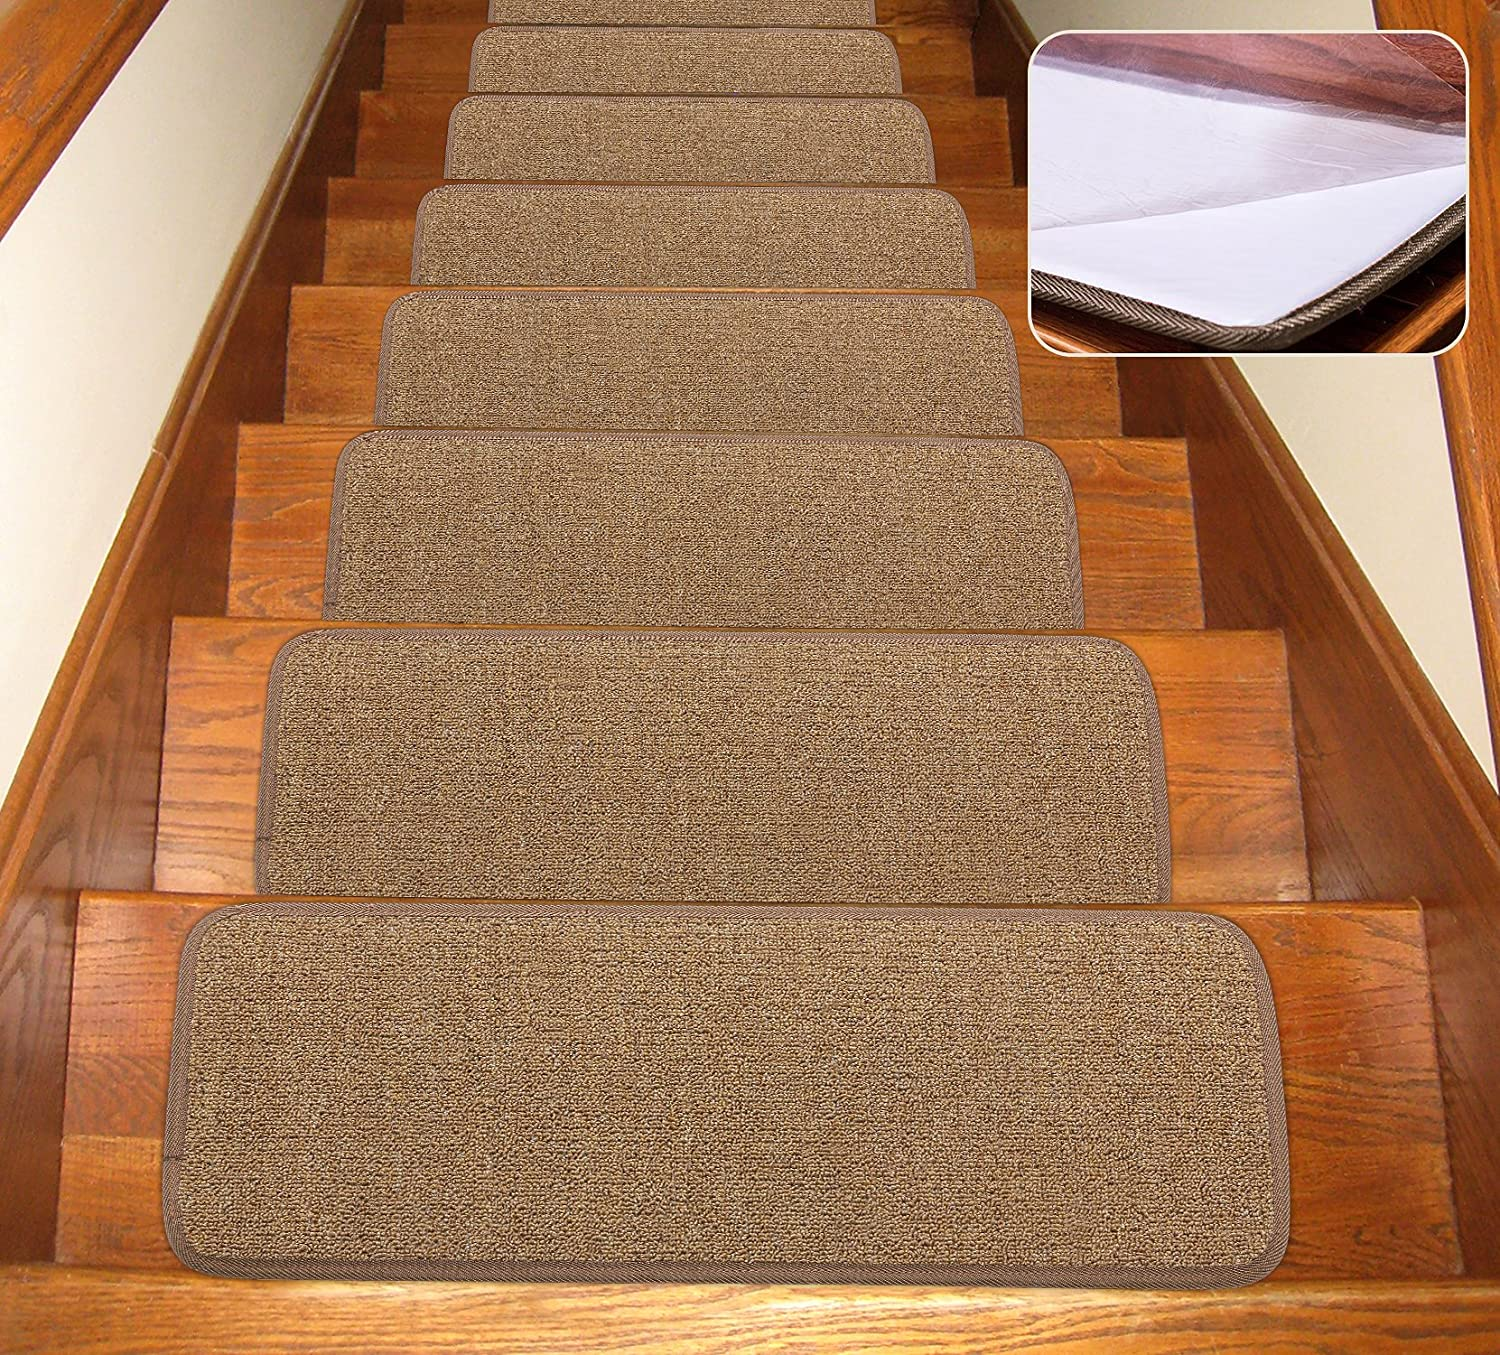 Removable Floor Rugs for Stairs Seloom Non-Slip Stair Treads Carpet with Skid Resistant Rubber Backing Specialized for Indoor Wooden Steps Black 13 Pieces,25.5/×9.5In